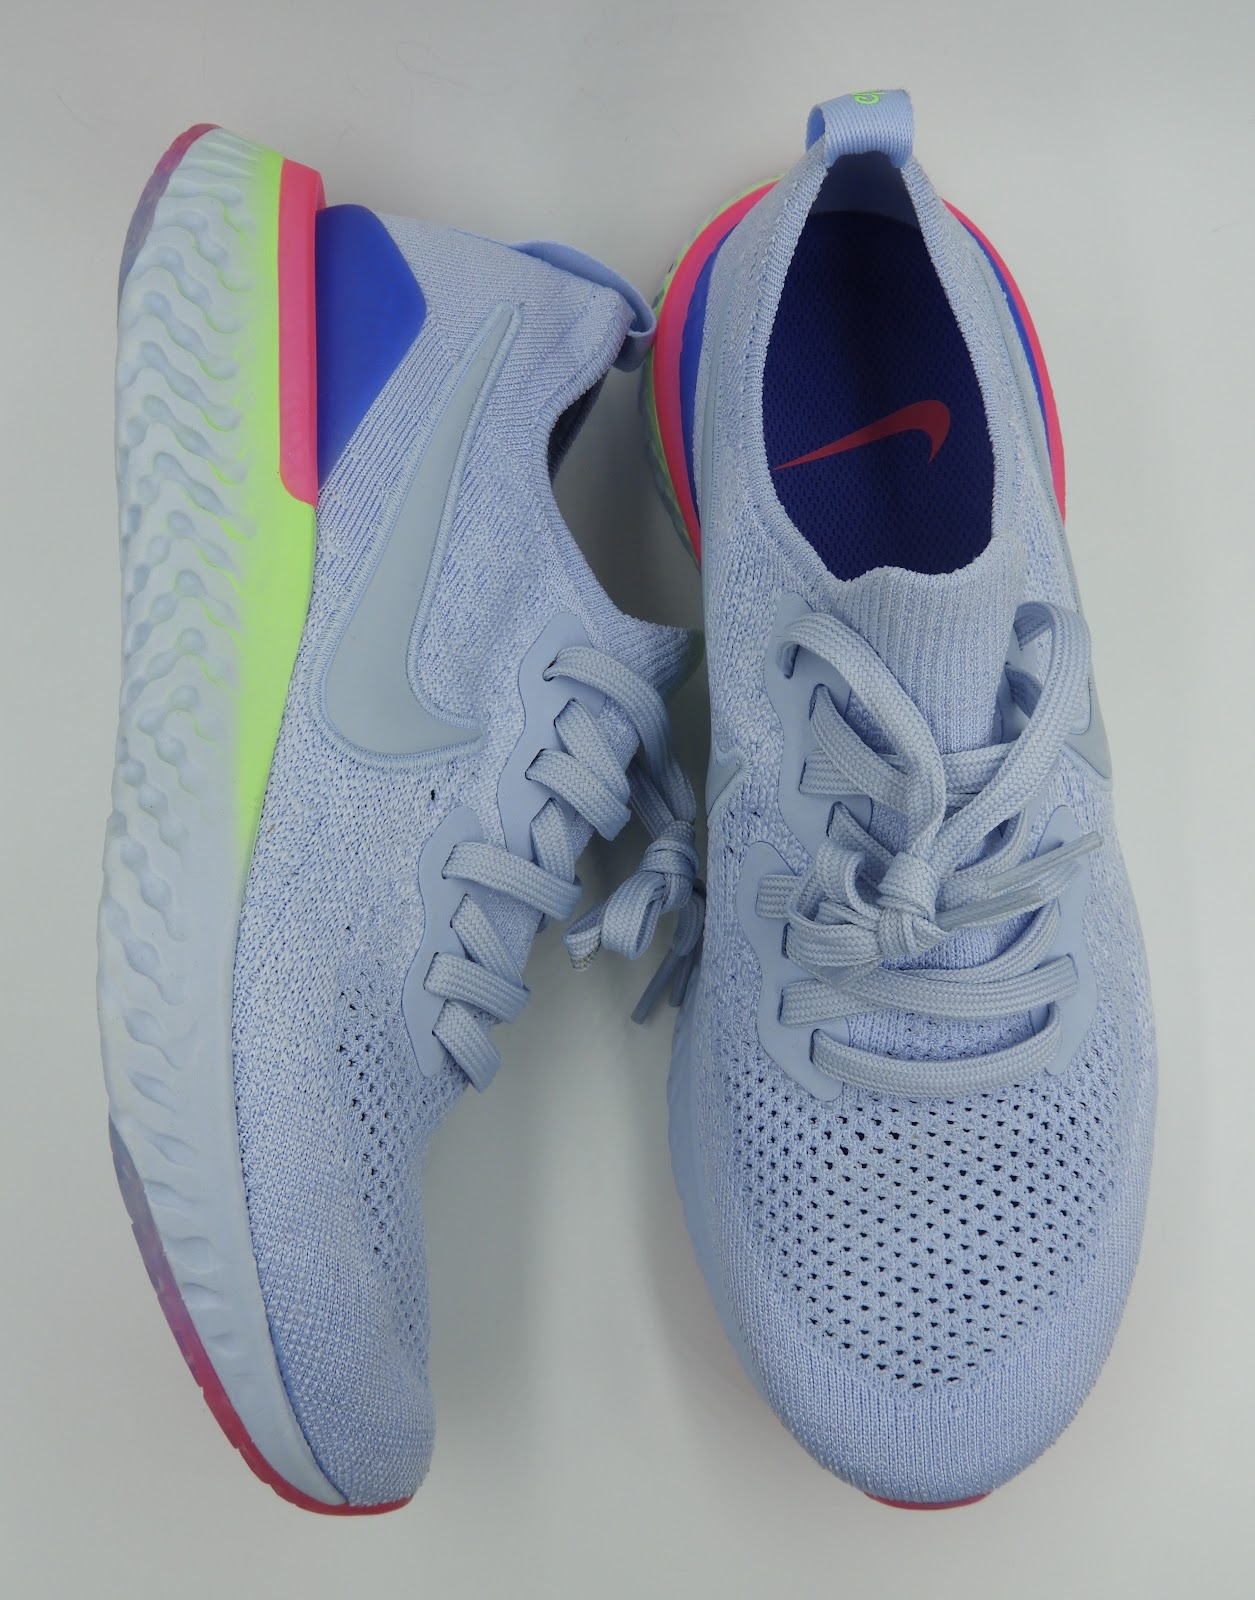 1a232288528 Road Trail Run: Nike Epic React Flyknit 2 Review: A Subtle yet ...